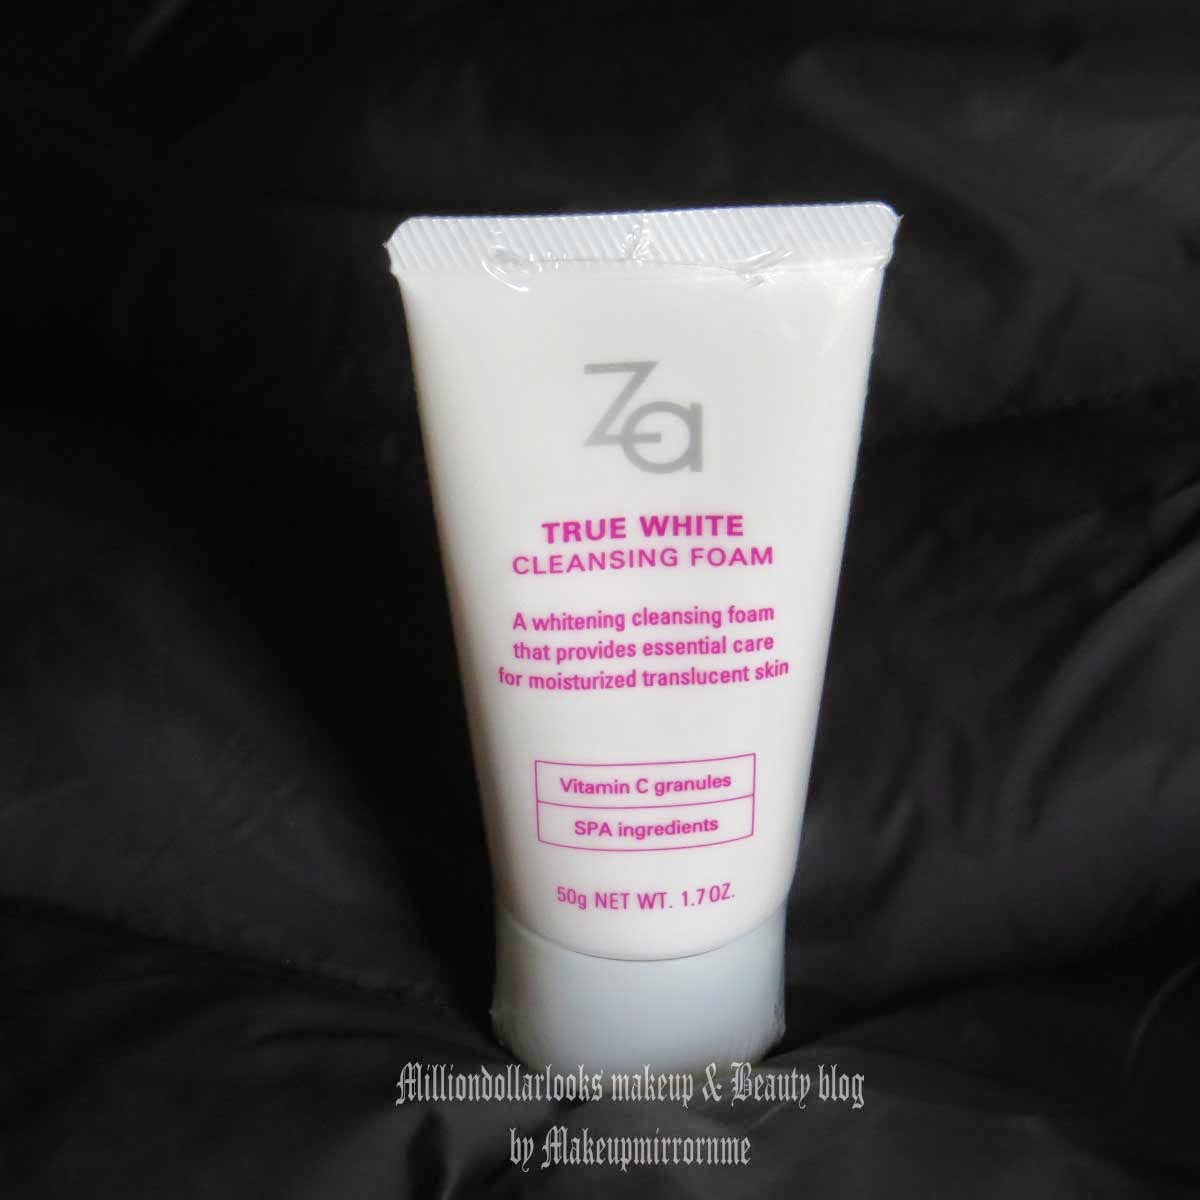 Za True White Cleansing Foam Review, Price & Pictures, Za skincare range review, Za face wash review, Za skincare products review India, Indian beauty blogger, Indian makeup and beauty blog, Top beauty blogs in India, Best products of Za, Za review India, Best whitening face wash, Best brightening face wash, Face wash for all skin type, Face wash for dry skin, Whitening products in India, remove melanin